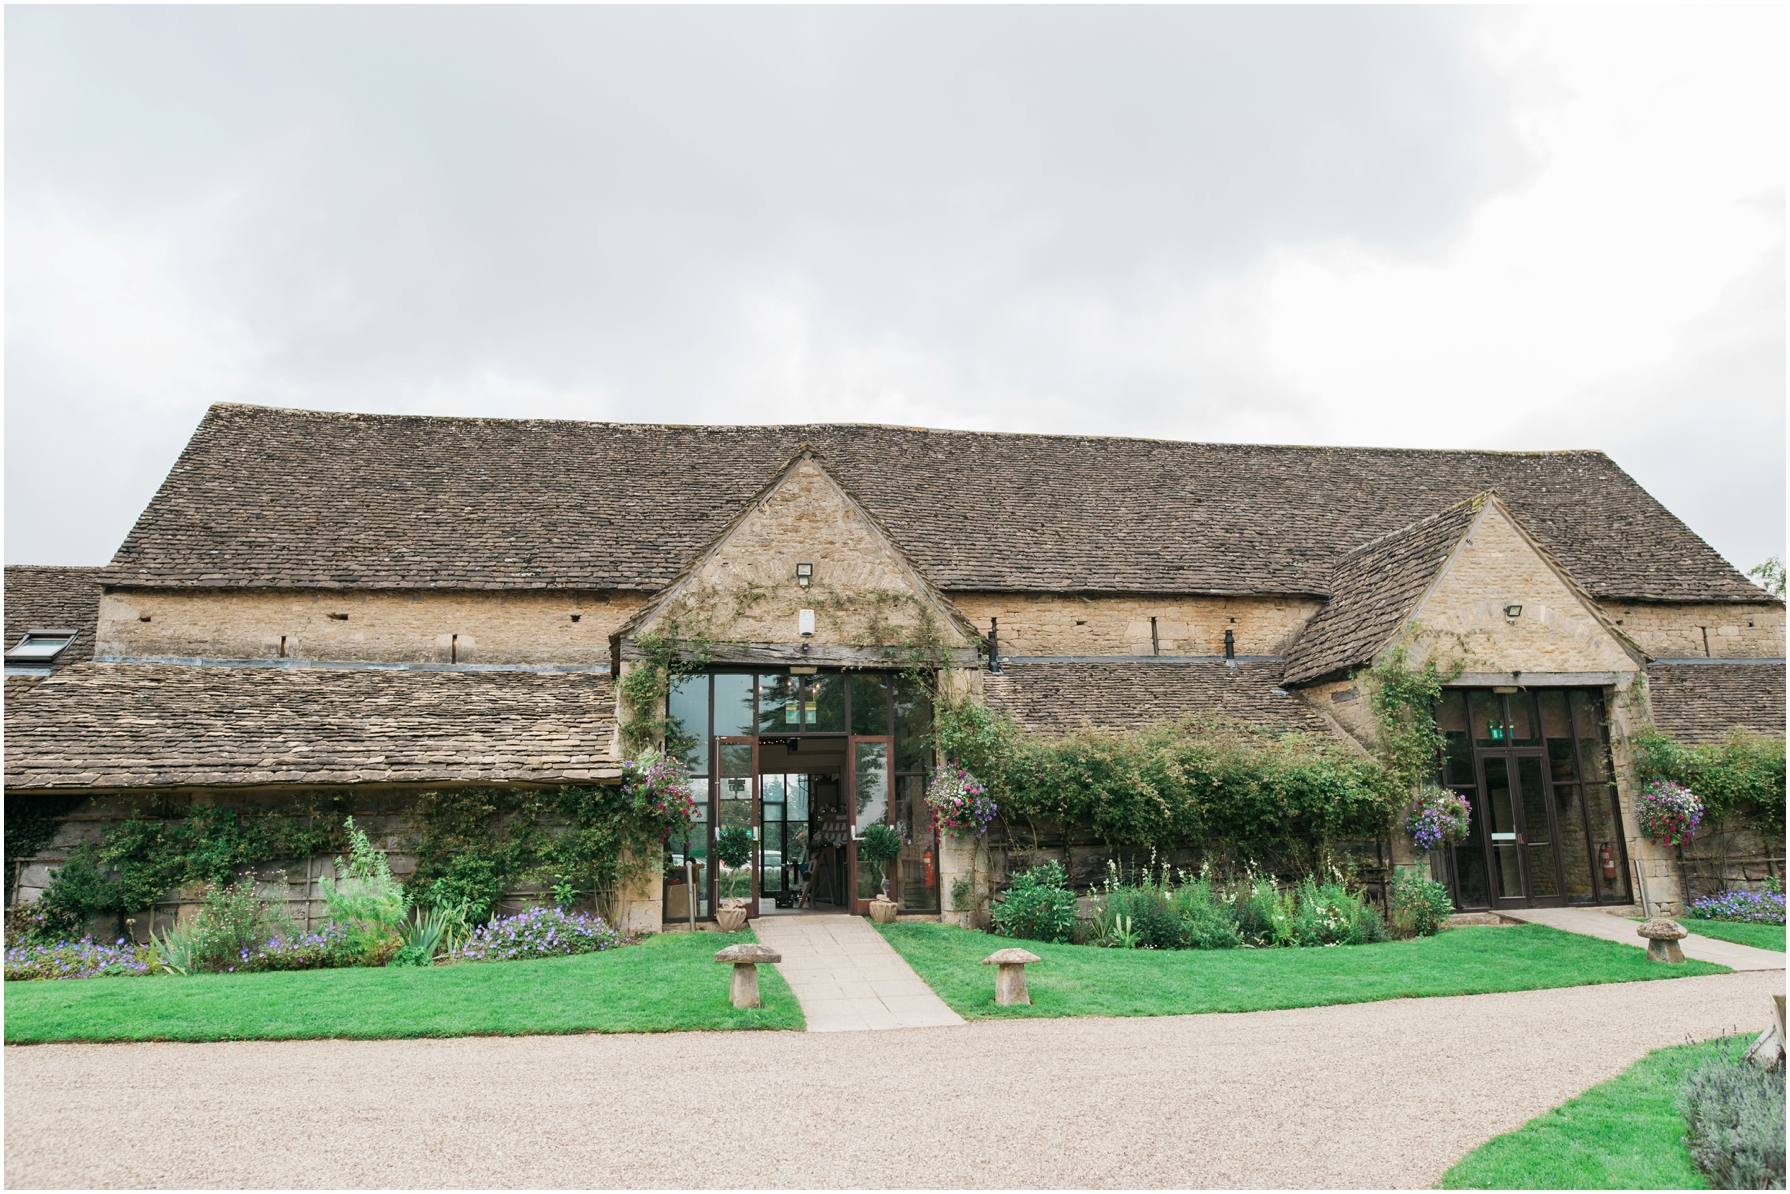 the back of the great tythe barn leading onto the gravel courtyard